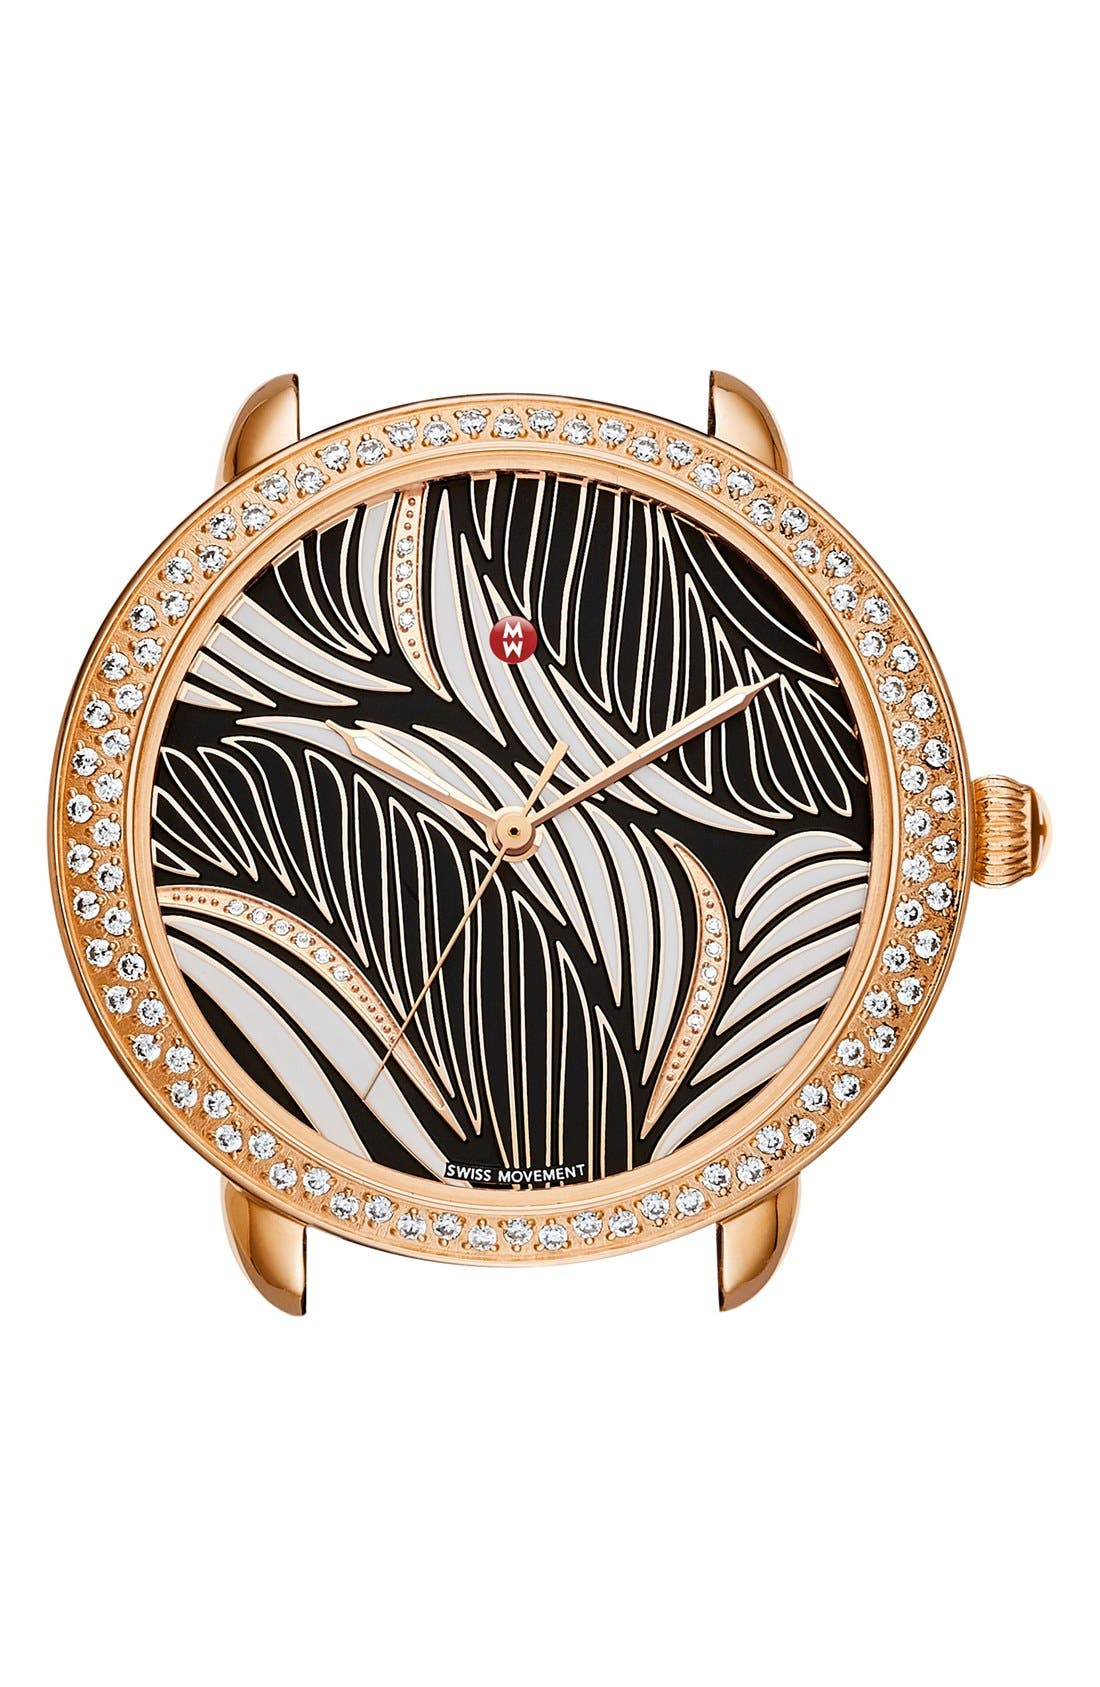 Main Image - MICHELE Serein 16 Diamond Watch Case, 34mm x 36mm